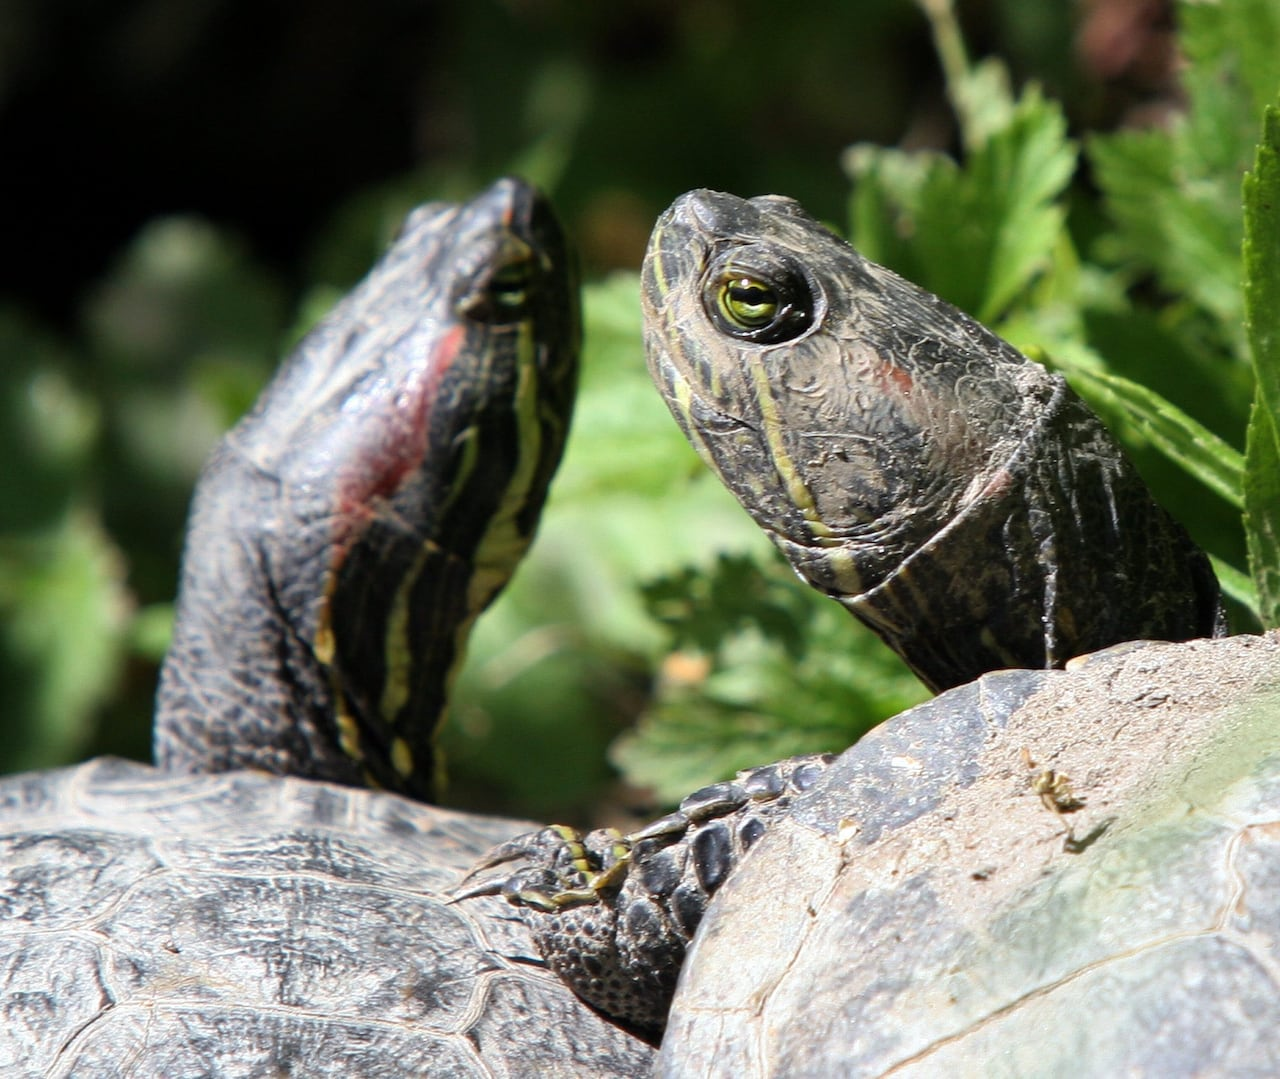 Invasive pet turtles dumped in Wascana Lake continue to spark